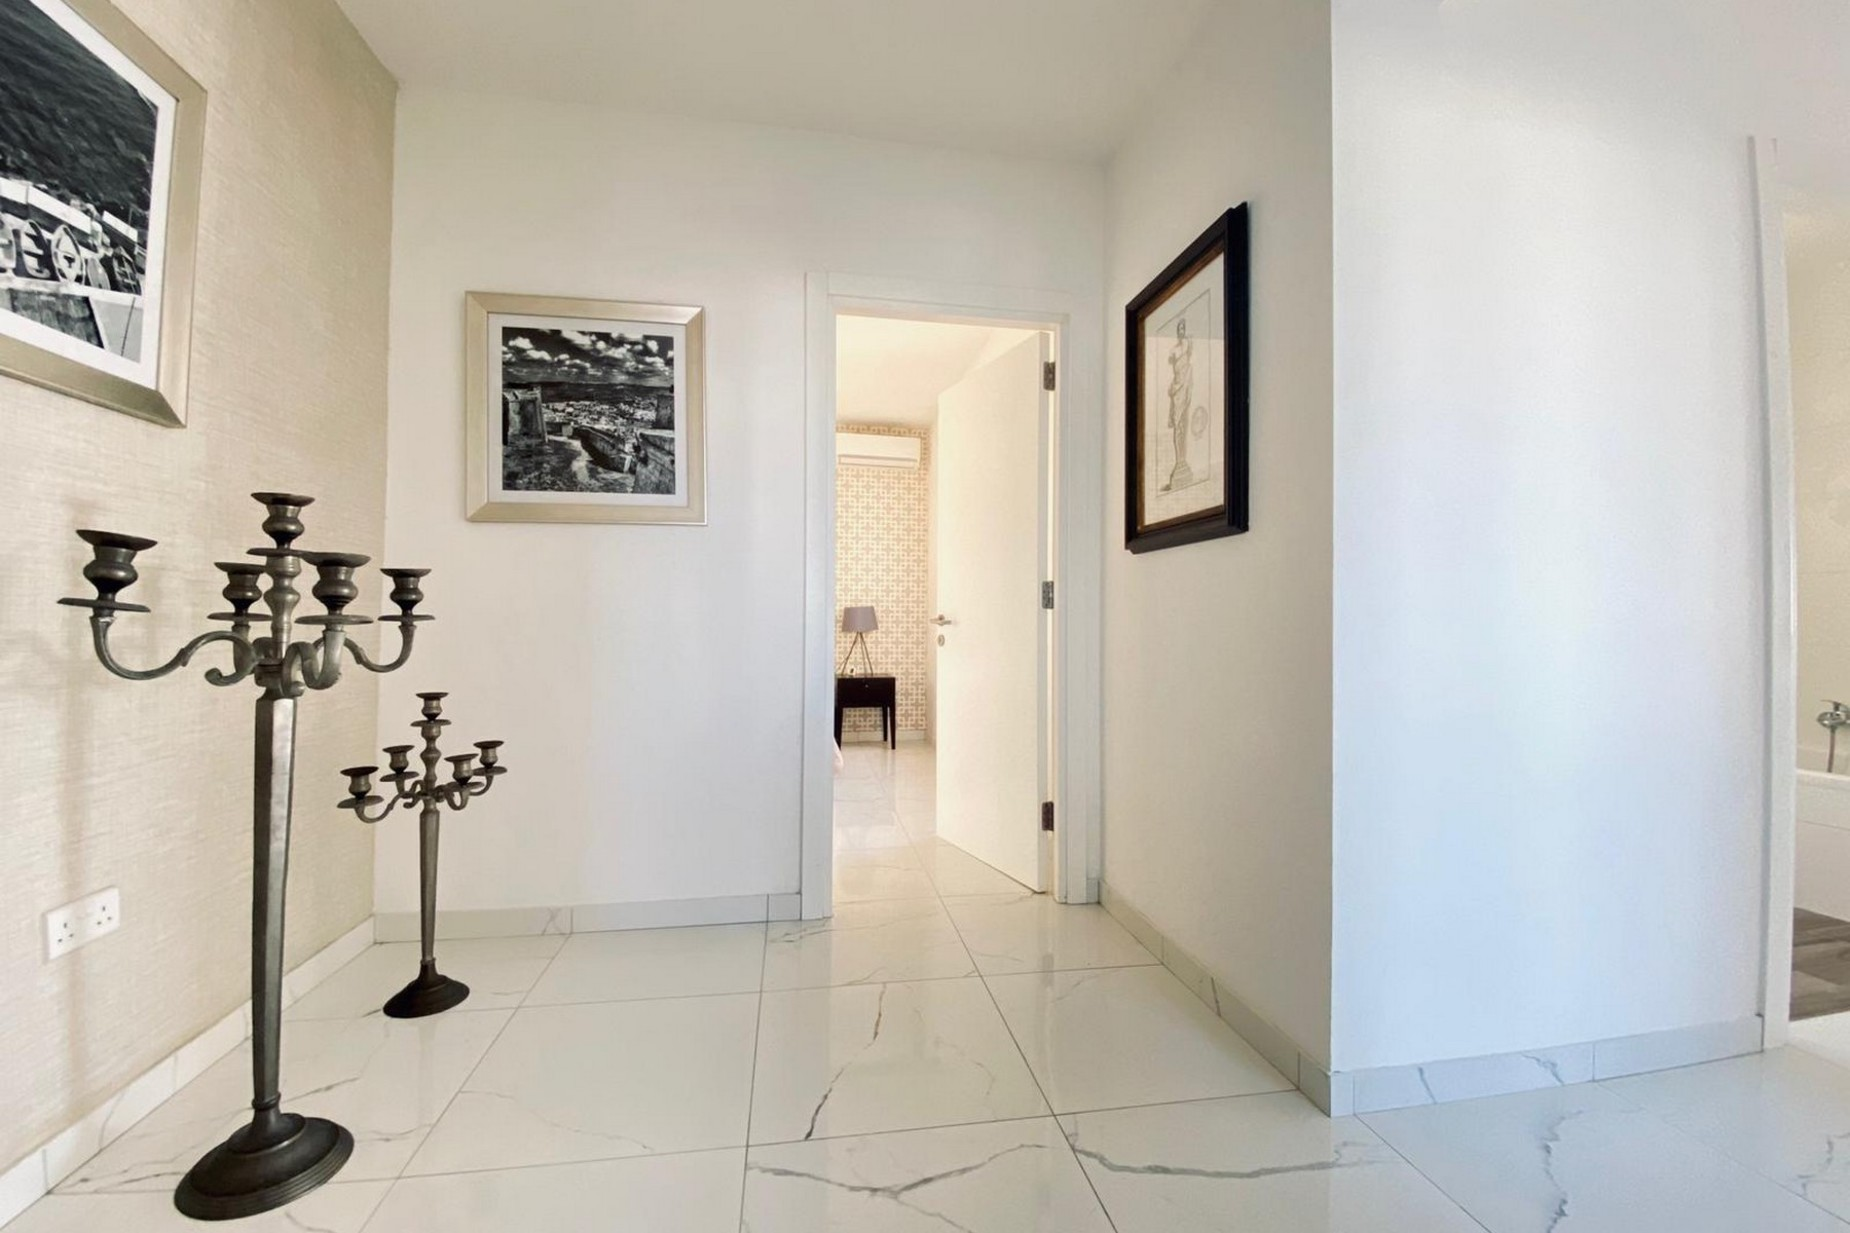 3 bed Penthouse For Rent in Gzira, Gzira - thumb 14